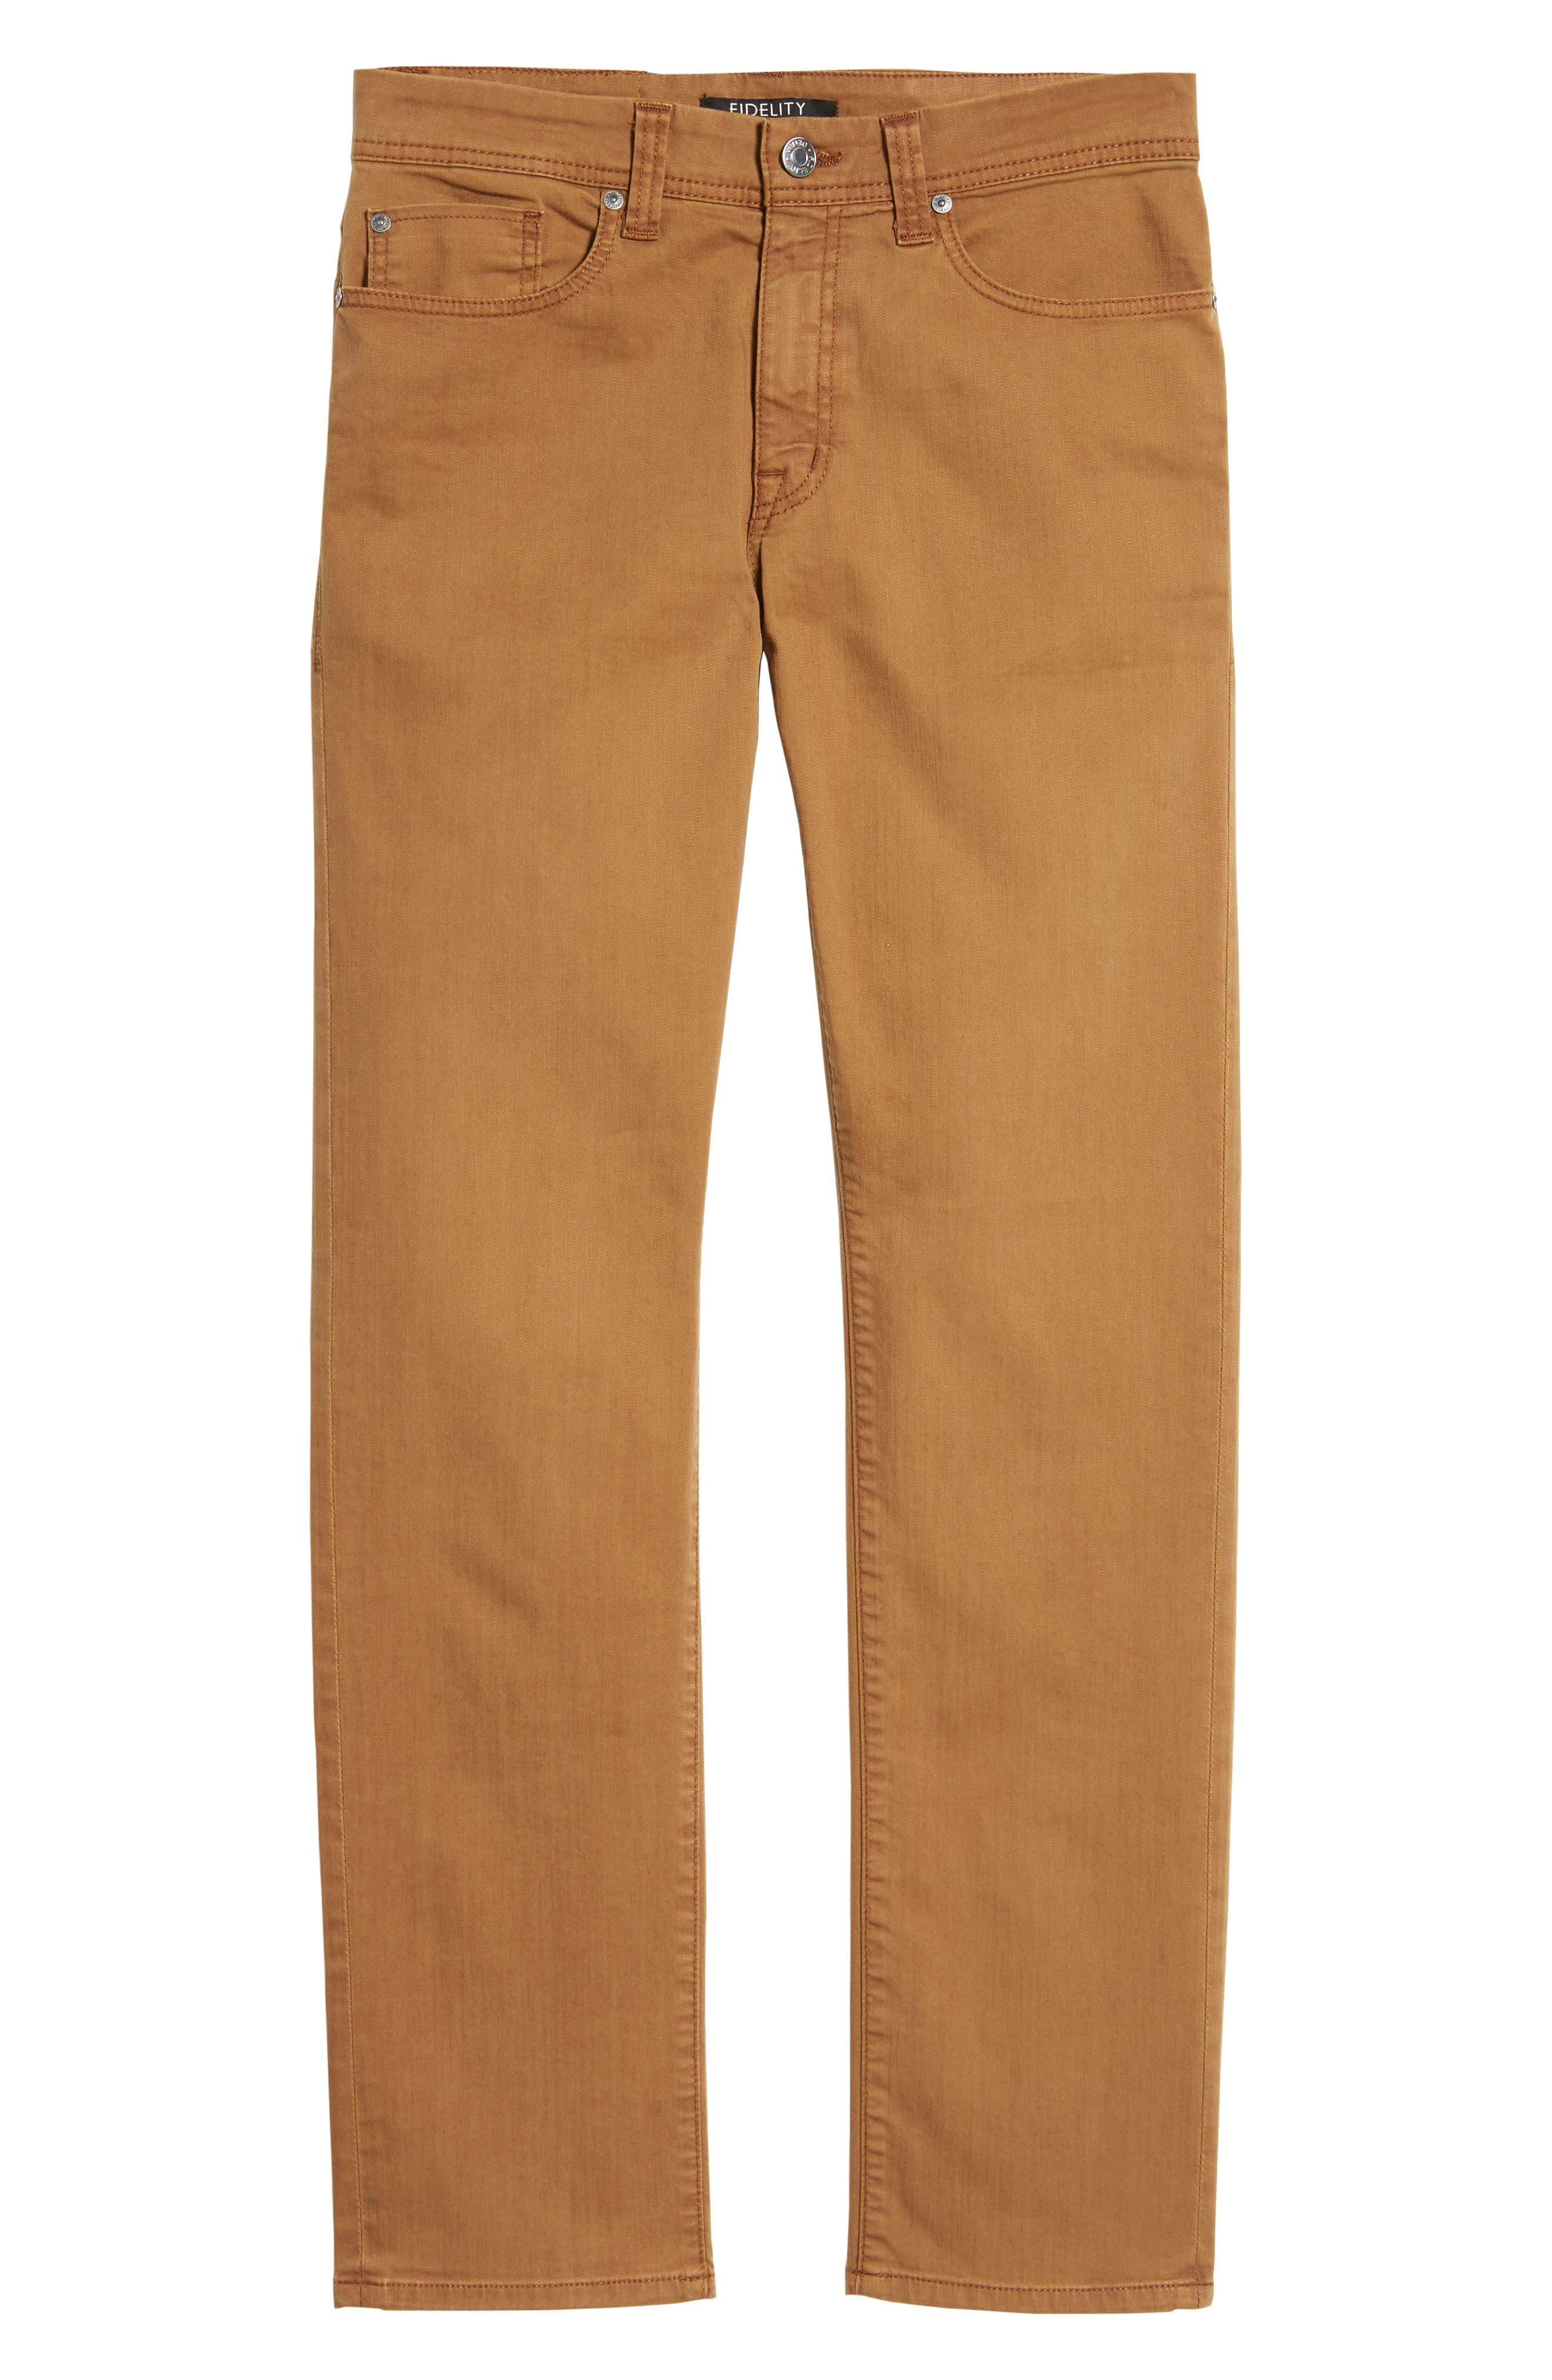 Jimmy Slim Straight Fit Jeans,                             Alternate thumbnail 6, color,                             300